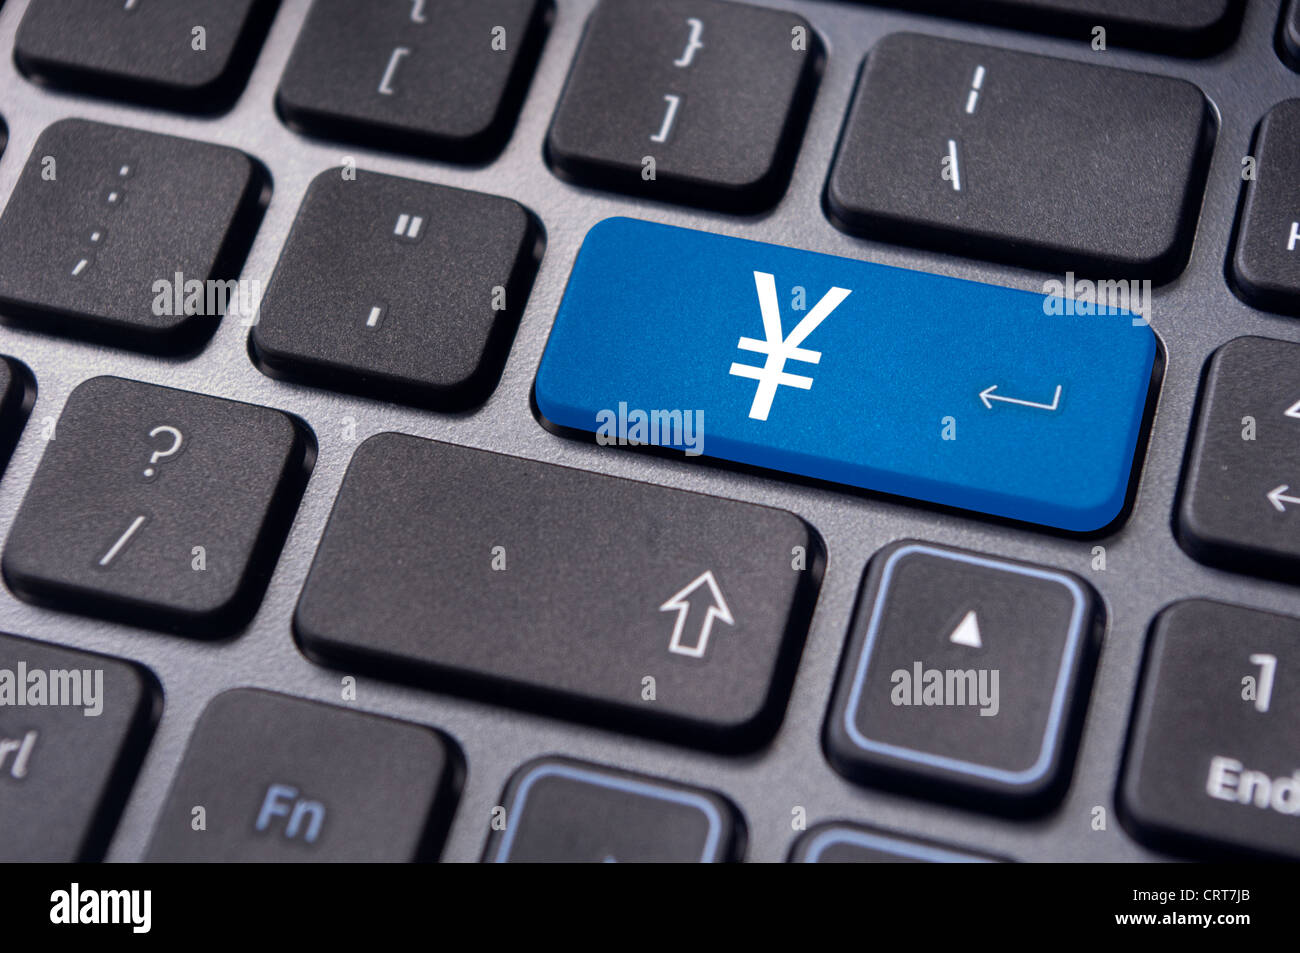 japanese yen symbol on keyboard, to convey forex trading or online trading of currency - Stock Image